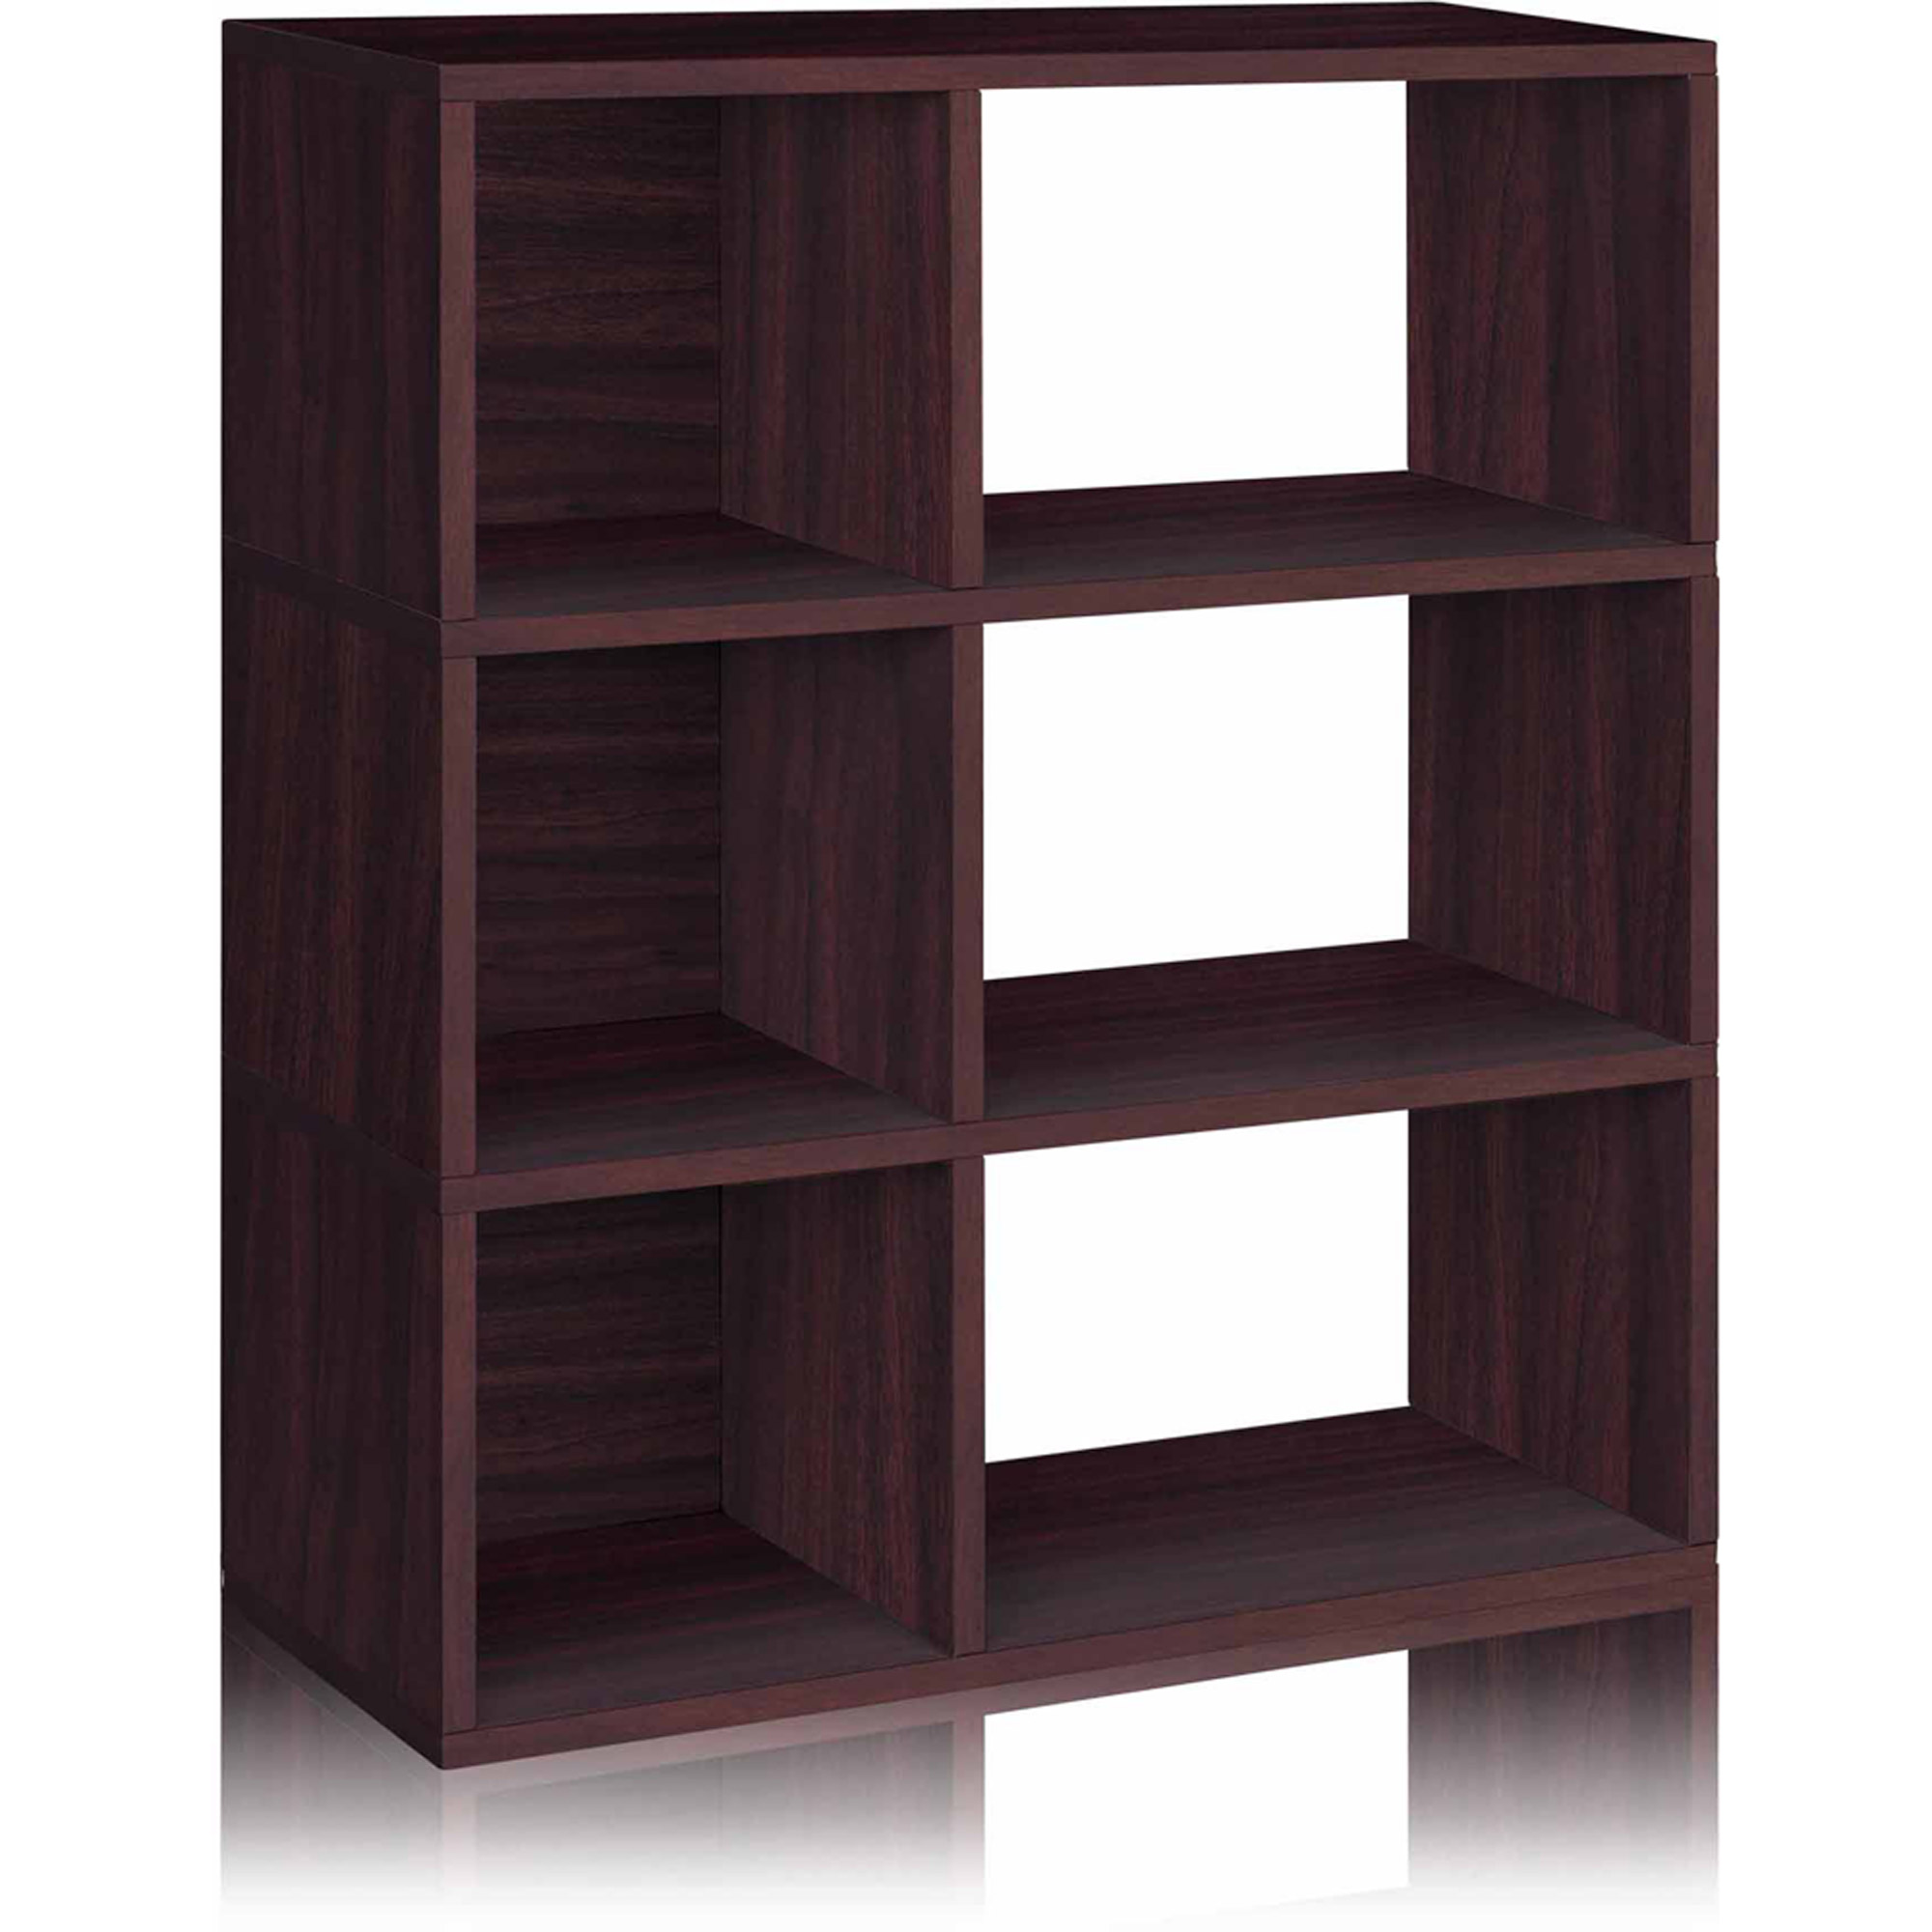 store rack wood coat shelf cubby hooks with solid